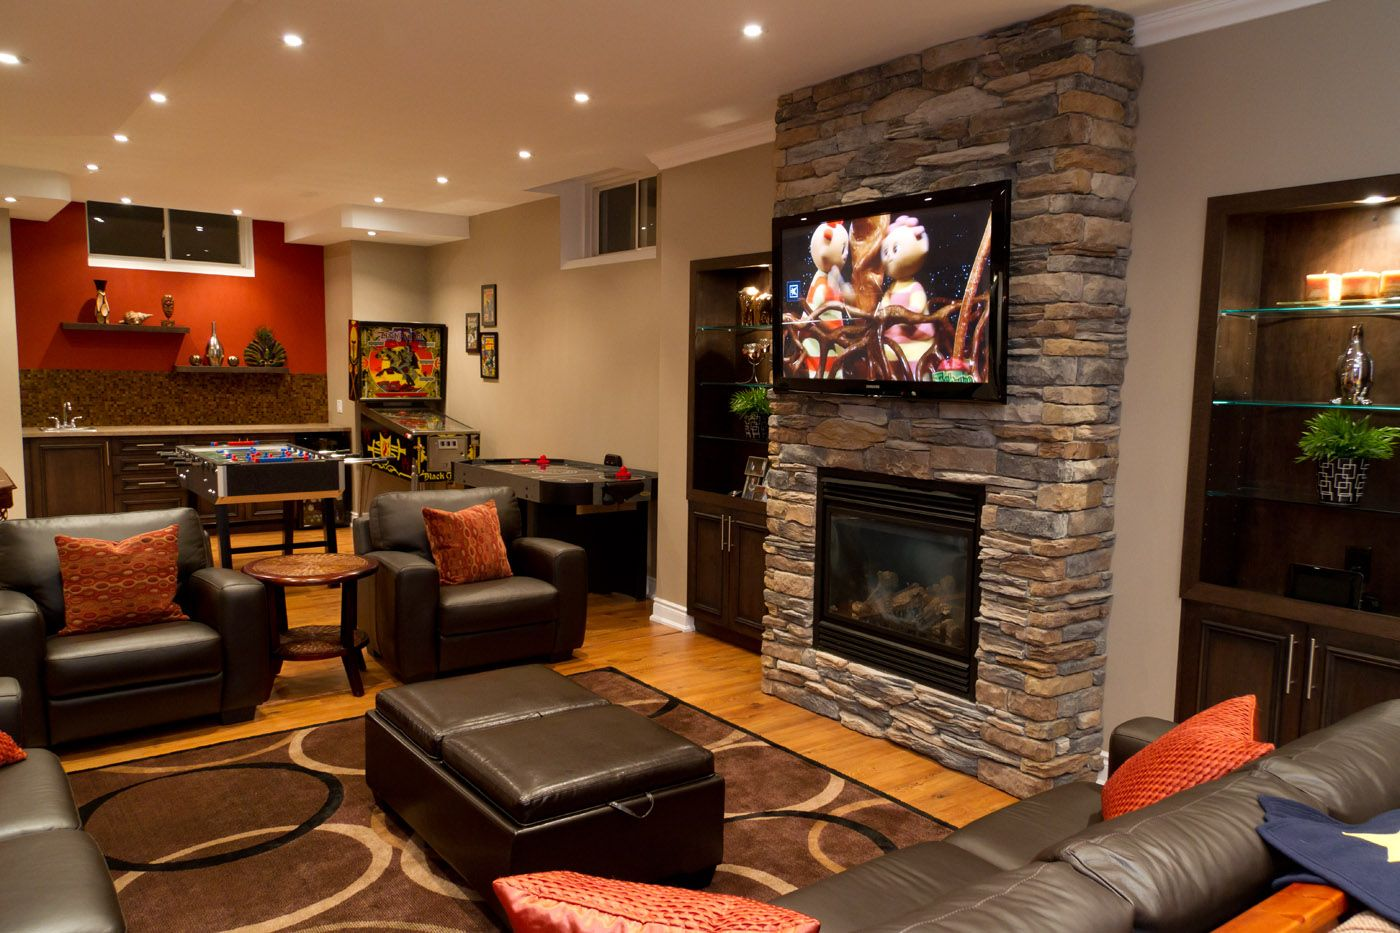 Basement Living Room Designs Captivating Basement Playroom Ideas  Finished Basement Basement Renovations Review